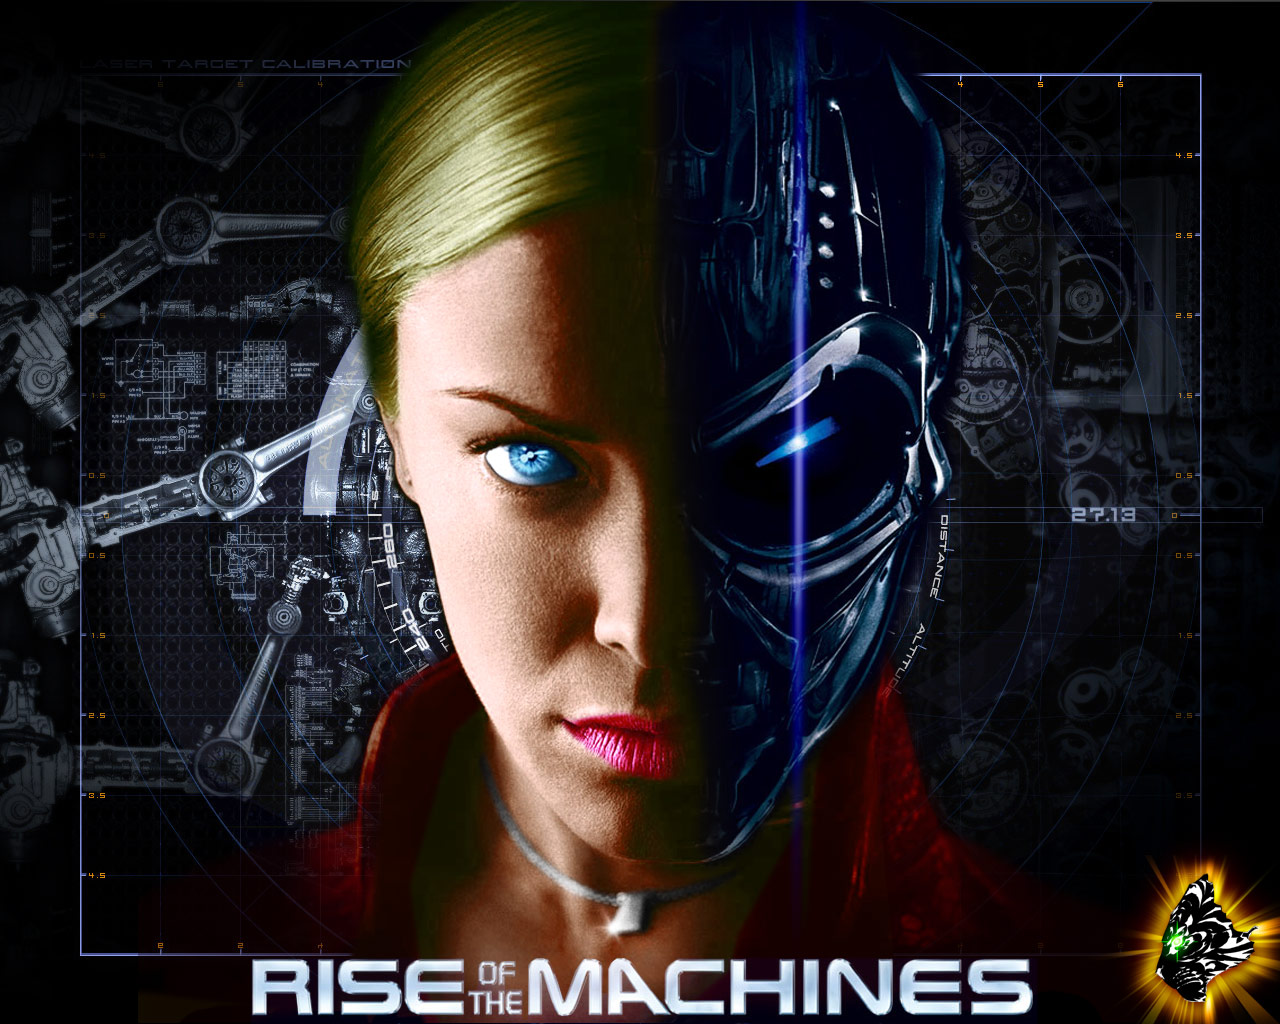 terminator rise of the machines wallpaper Plenty of awesome terminator 3: rise of the machines wallpapers and  background images for free download, share and have fun.